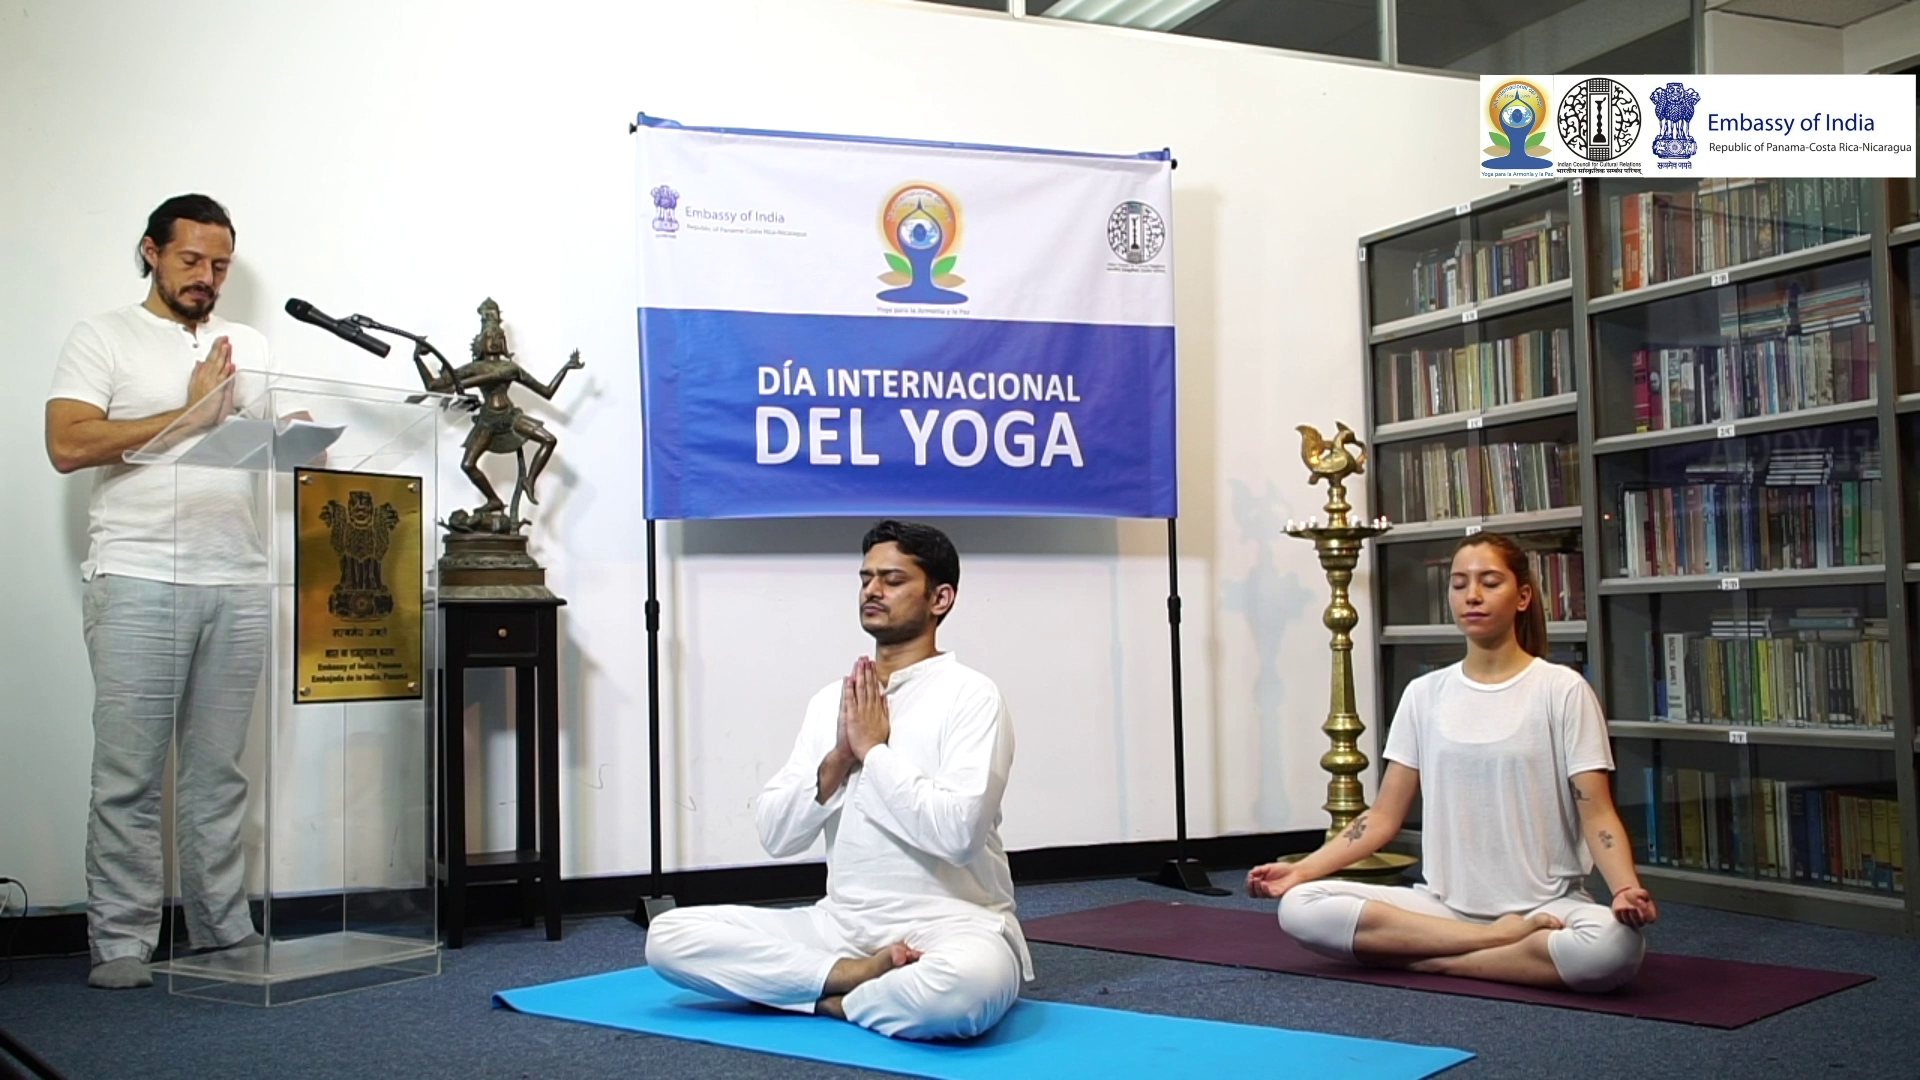 Common Yoga Protocol 01 (Panama - 21-06-2020- 9.20-10.30am)